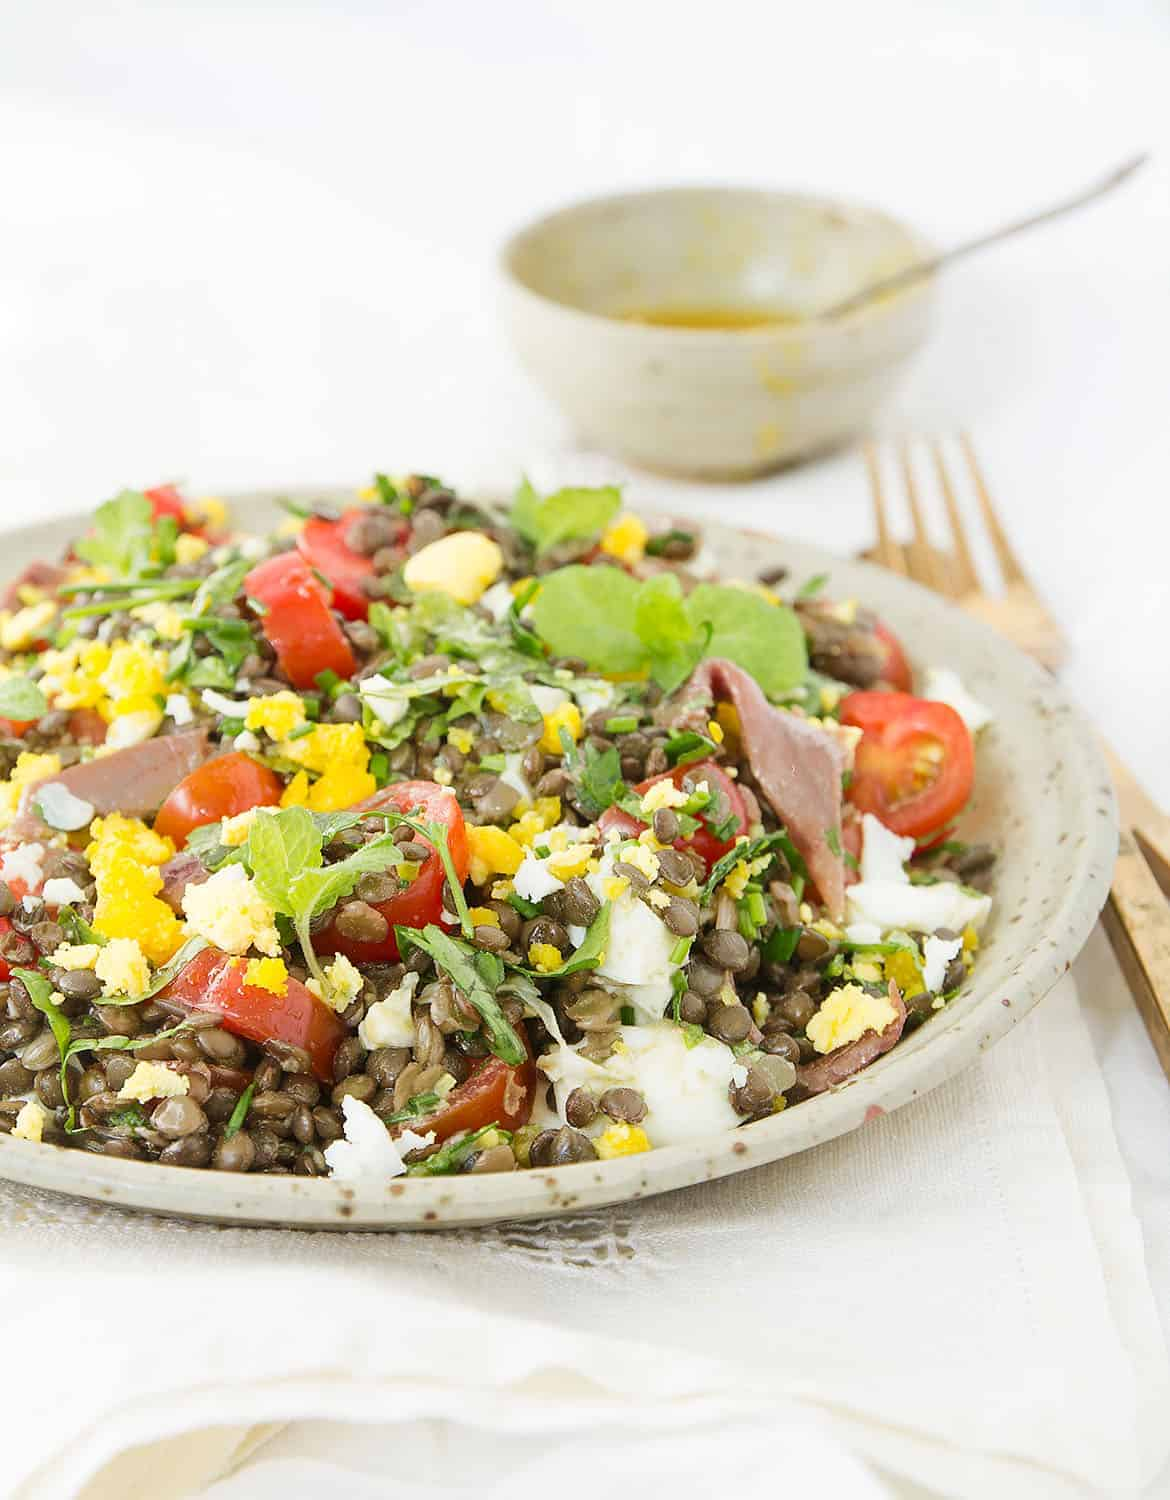 Mediterranean puy lentil salad with herbs and cherry tomatoes on a grey plate, a bowl with the dressing in the background.